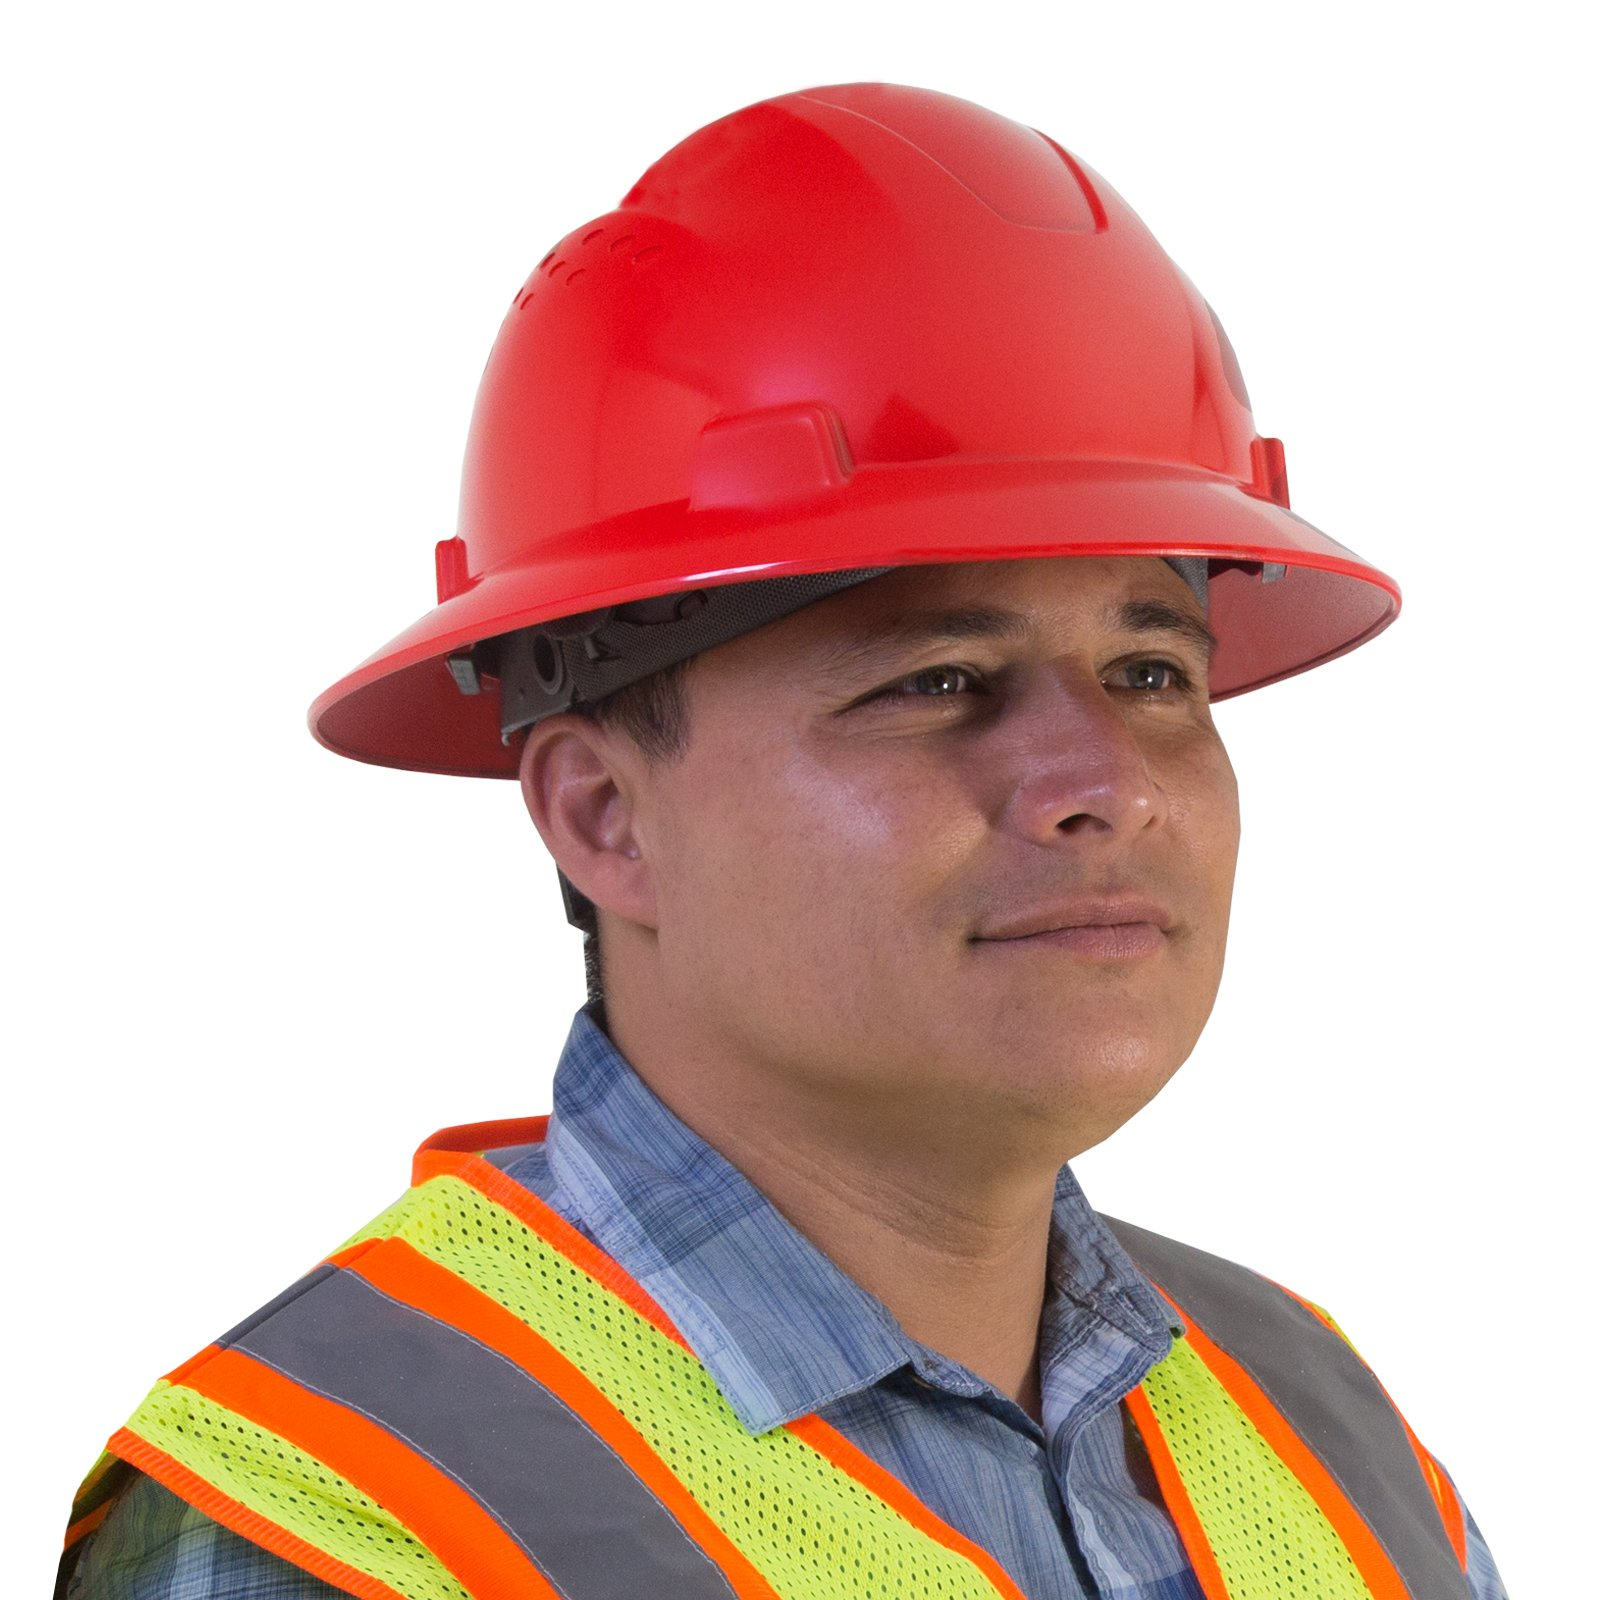 PPE By JORESTECH - HDPE Full Brim Style Hard Hat Helmet w/Adjustable Ratchet Suspension For Work, Home, and General Headwear Protection ANSI Z89.1-14 Compliant (Red) by JORESTECH (Image #2)